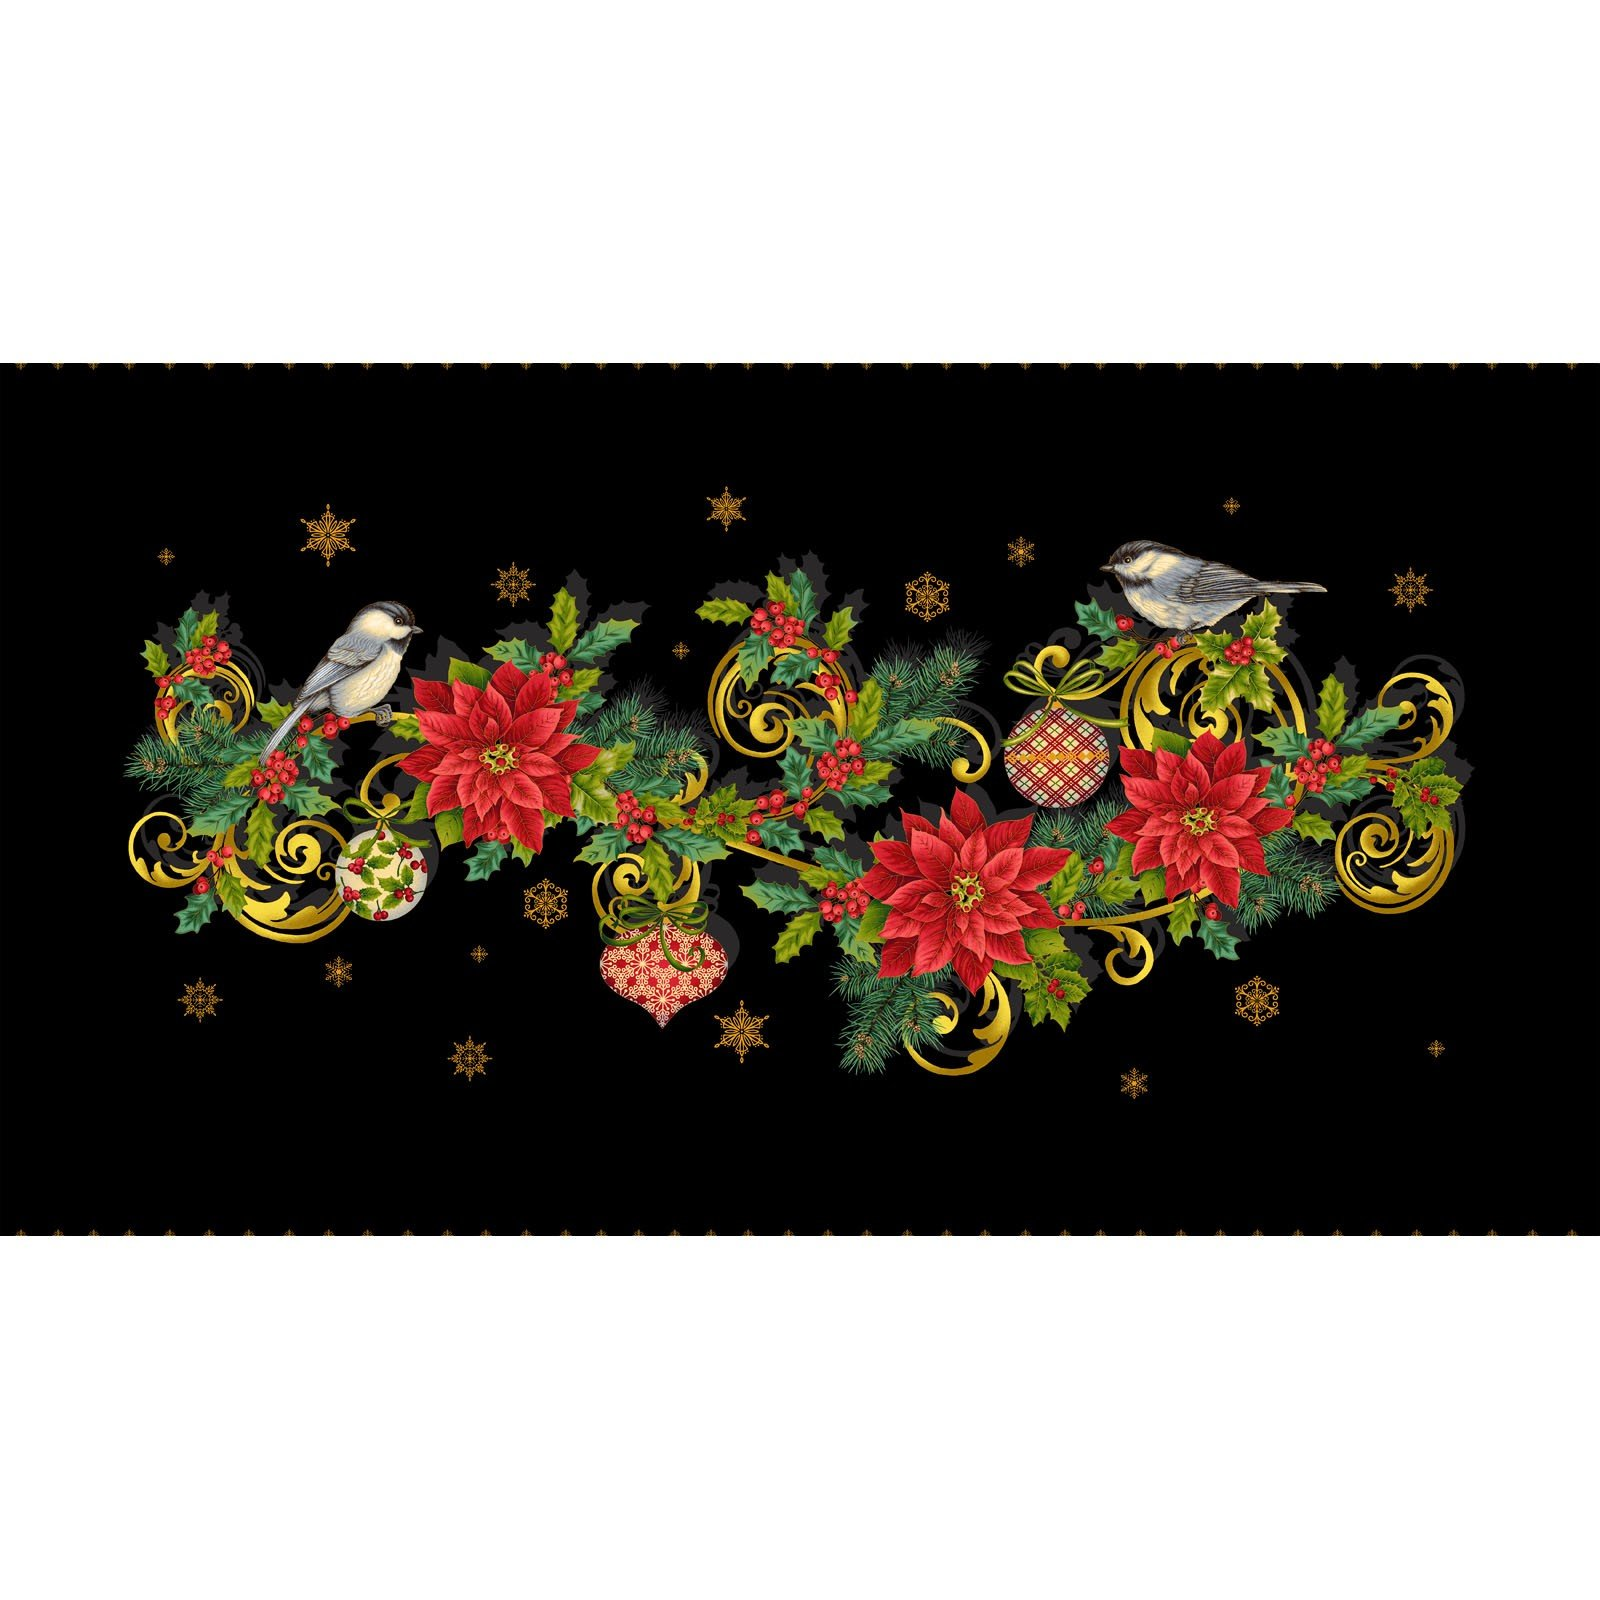 Christmas Joy Table Runner Panel<br/>Studio-e 4691P-99